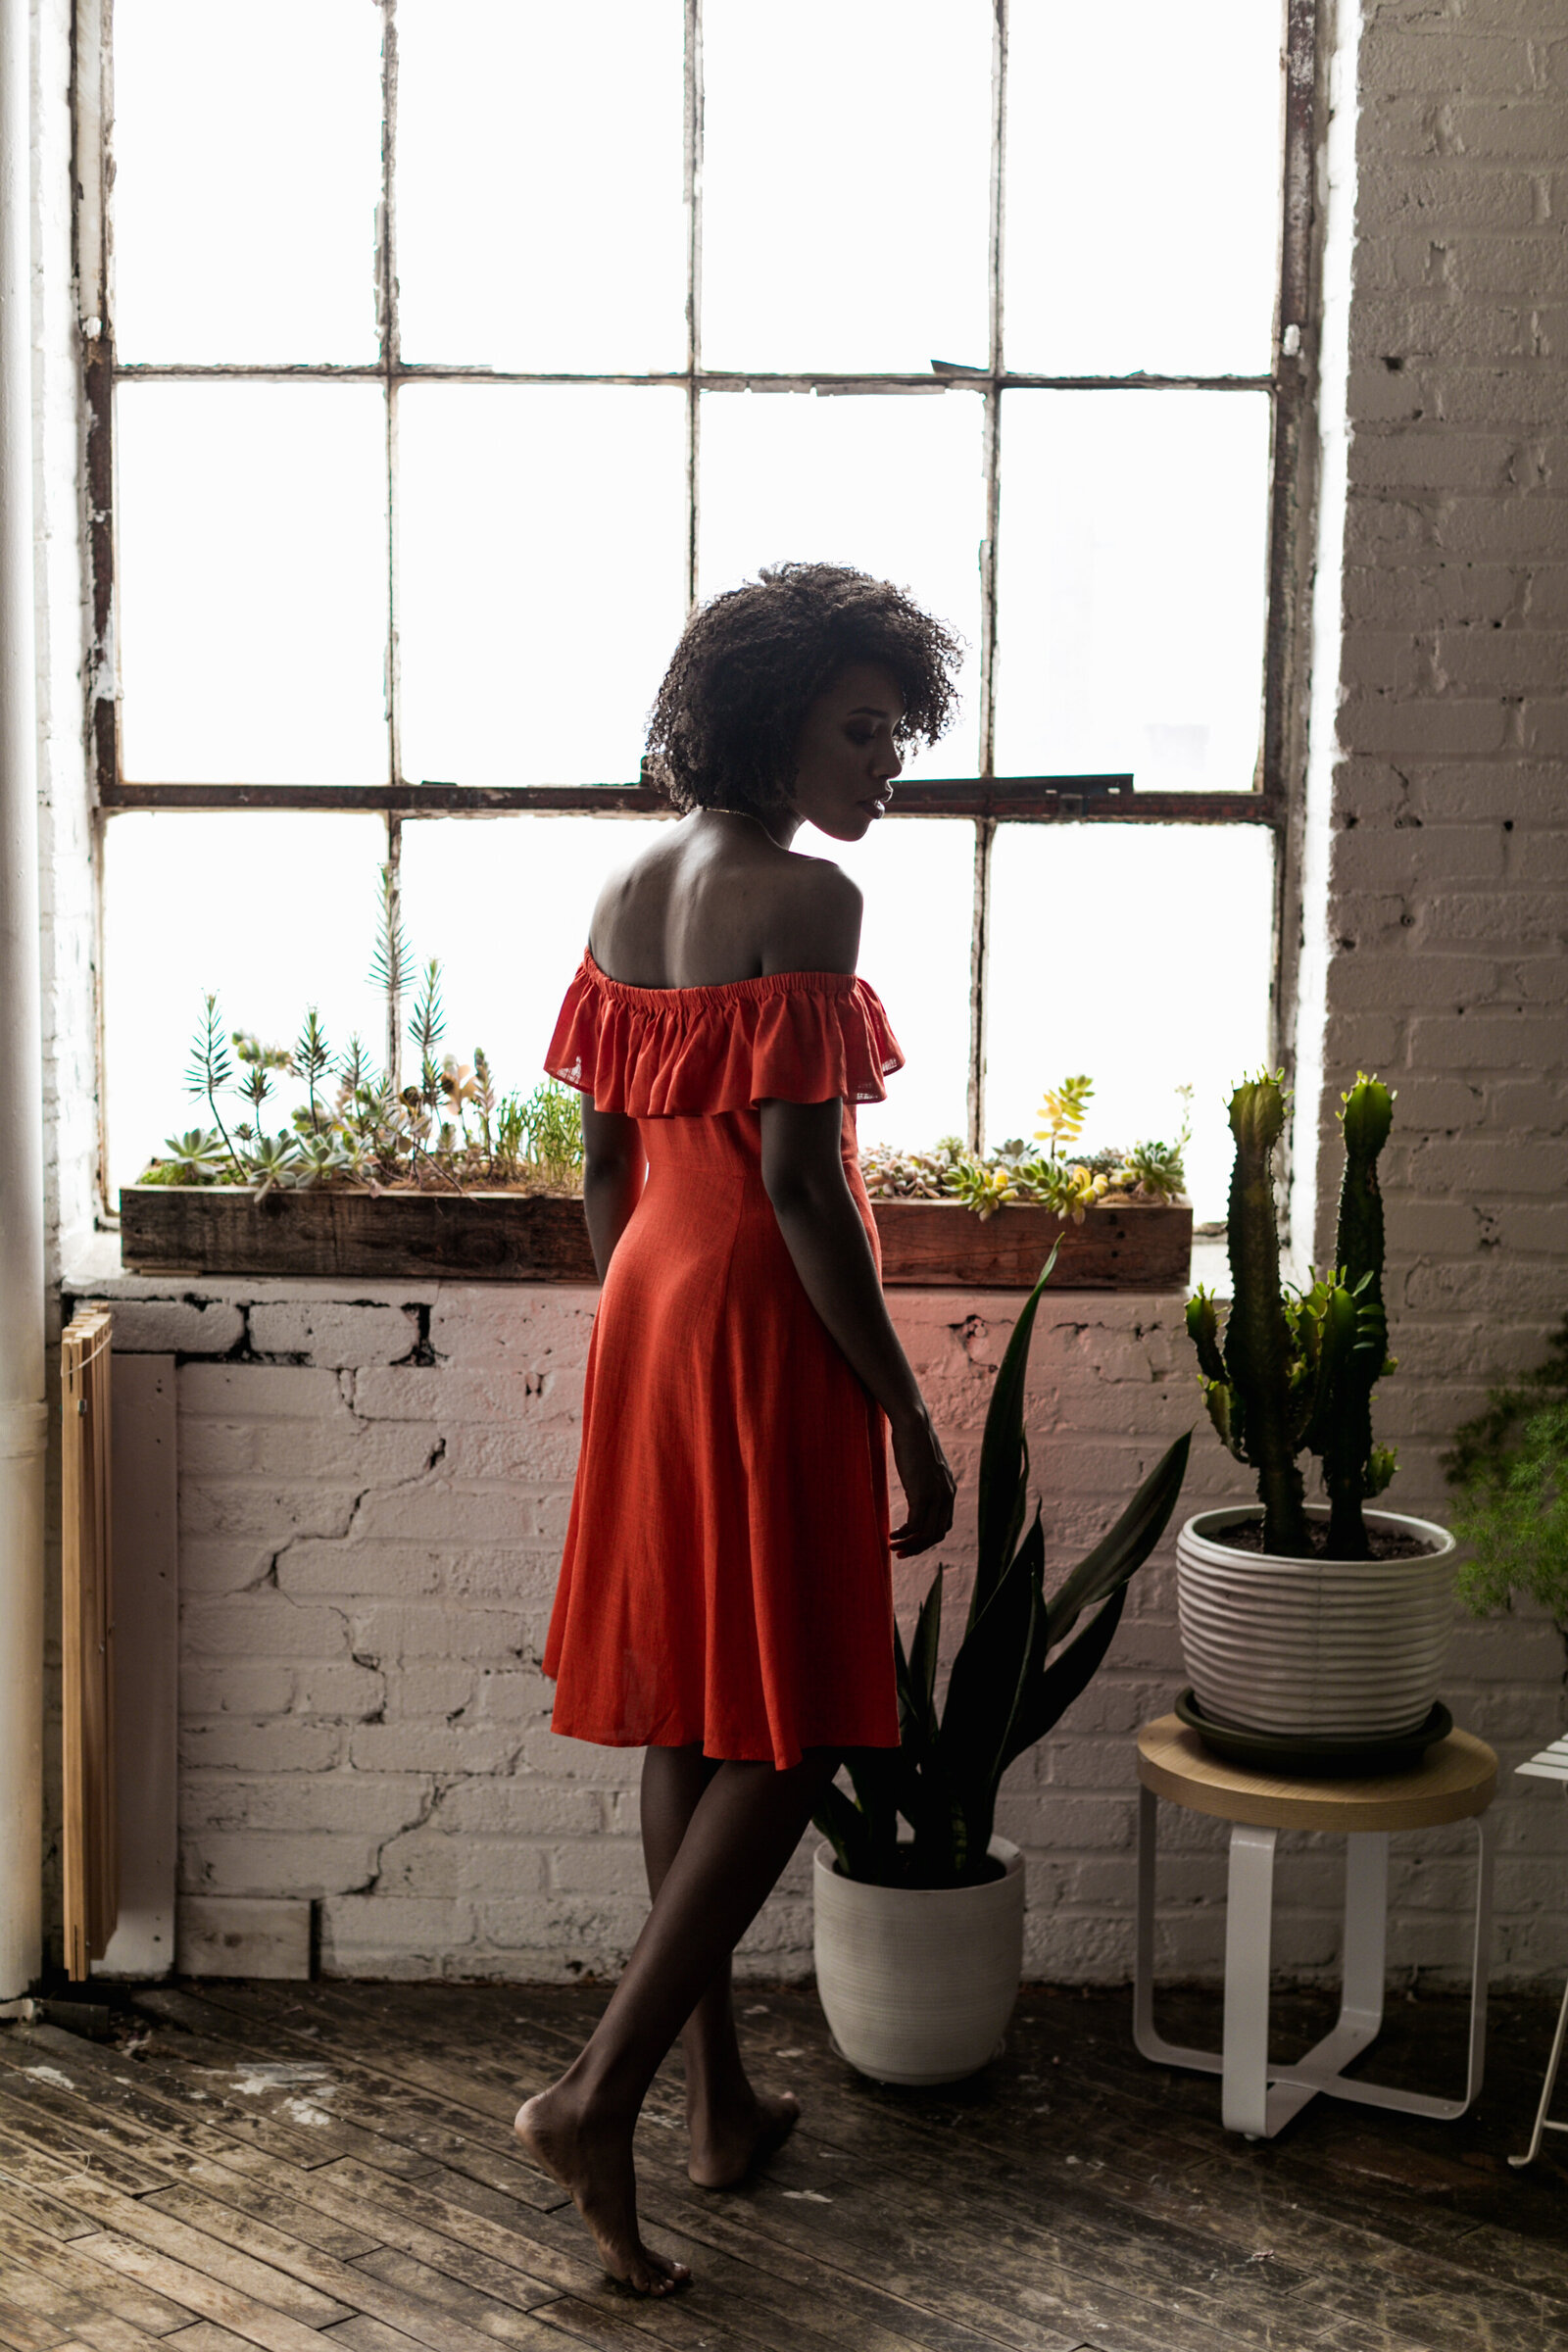 woman in red dress with plants and window